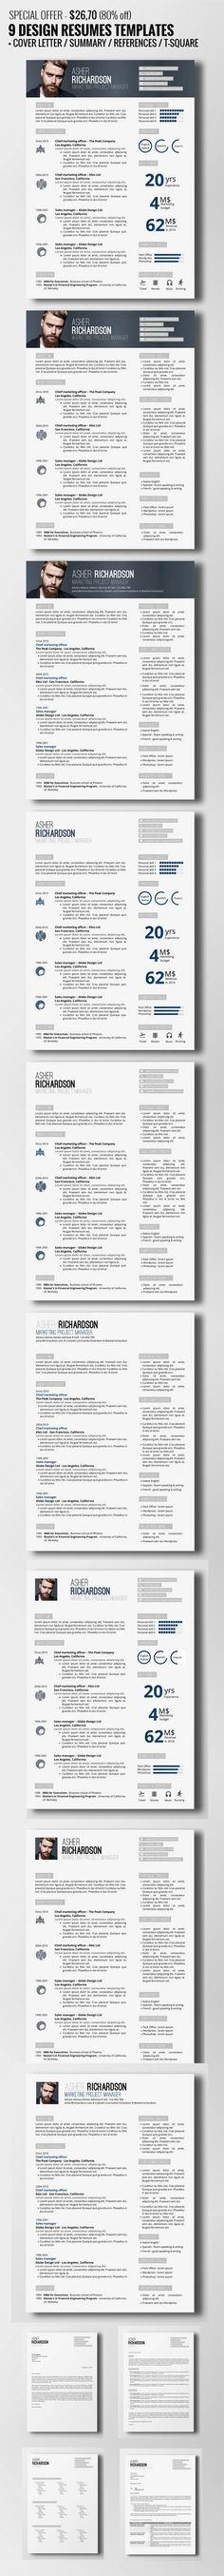 435 best Resume images on Pinterest Resume design, Design resume - development director job description